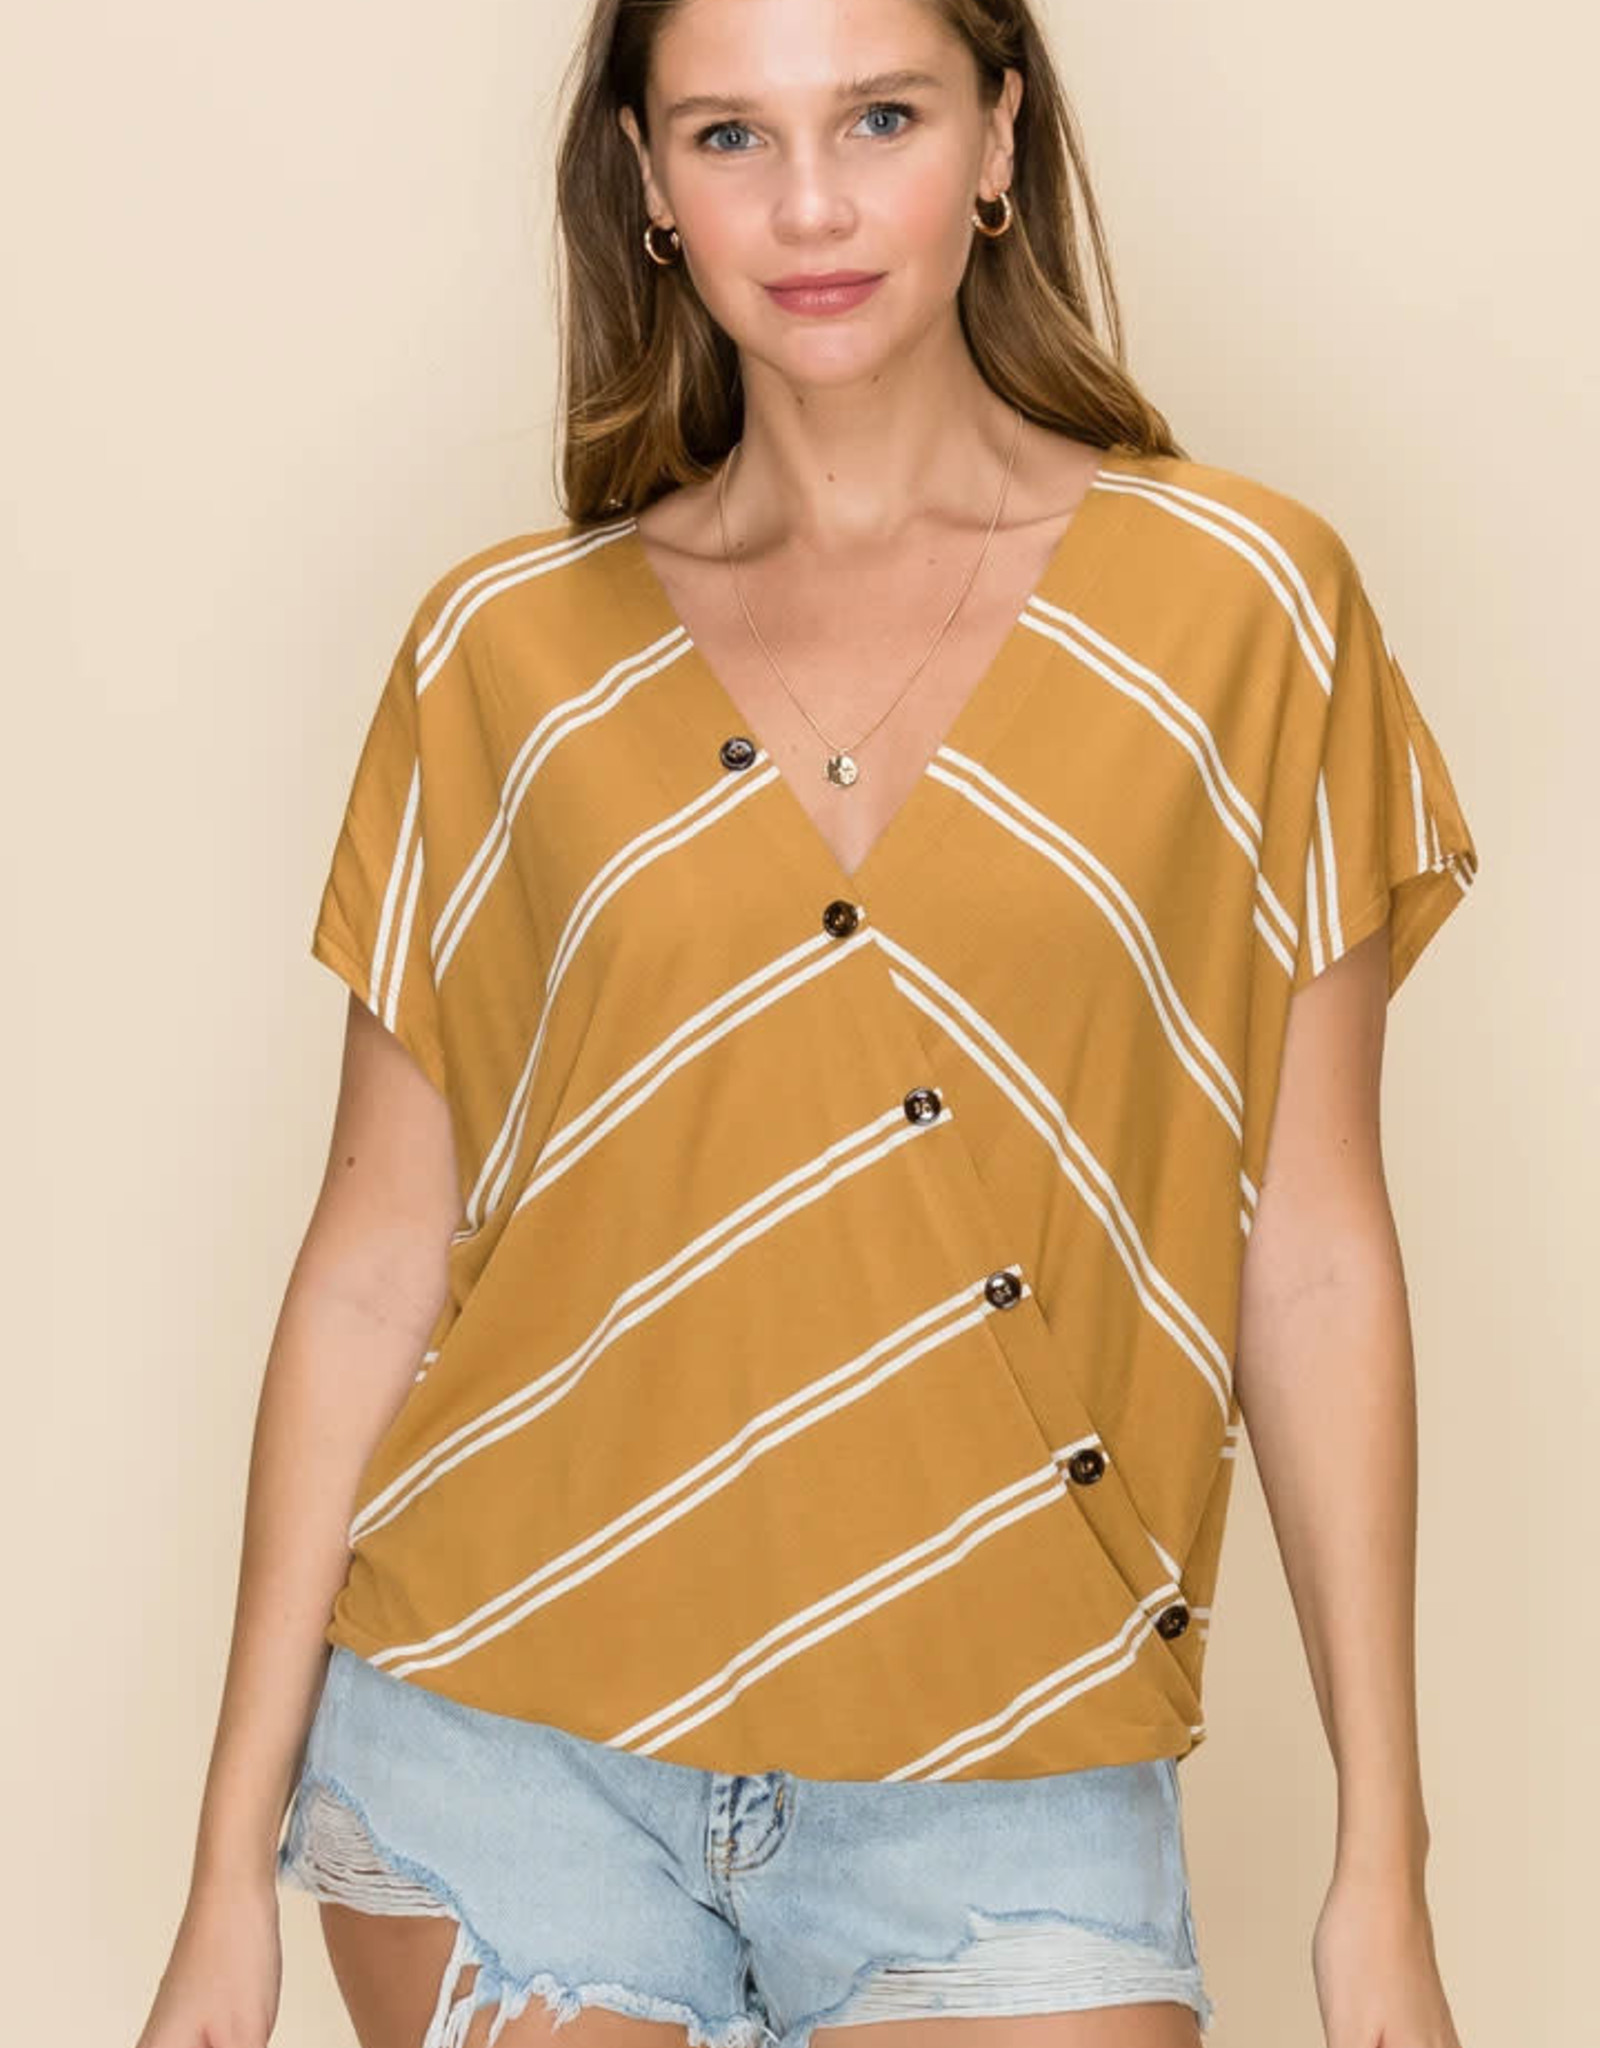 HYFVE Crossover V Neck with Horn Button Top